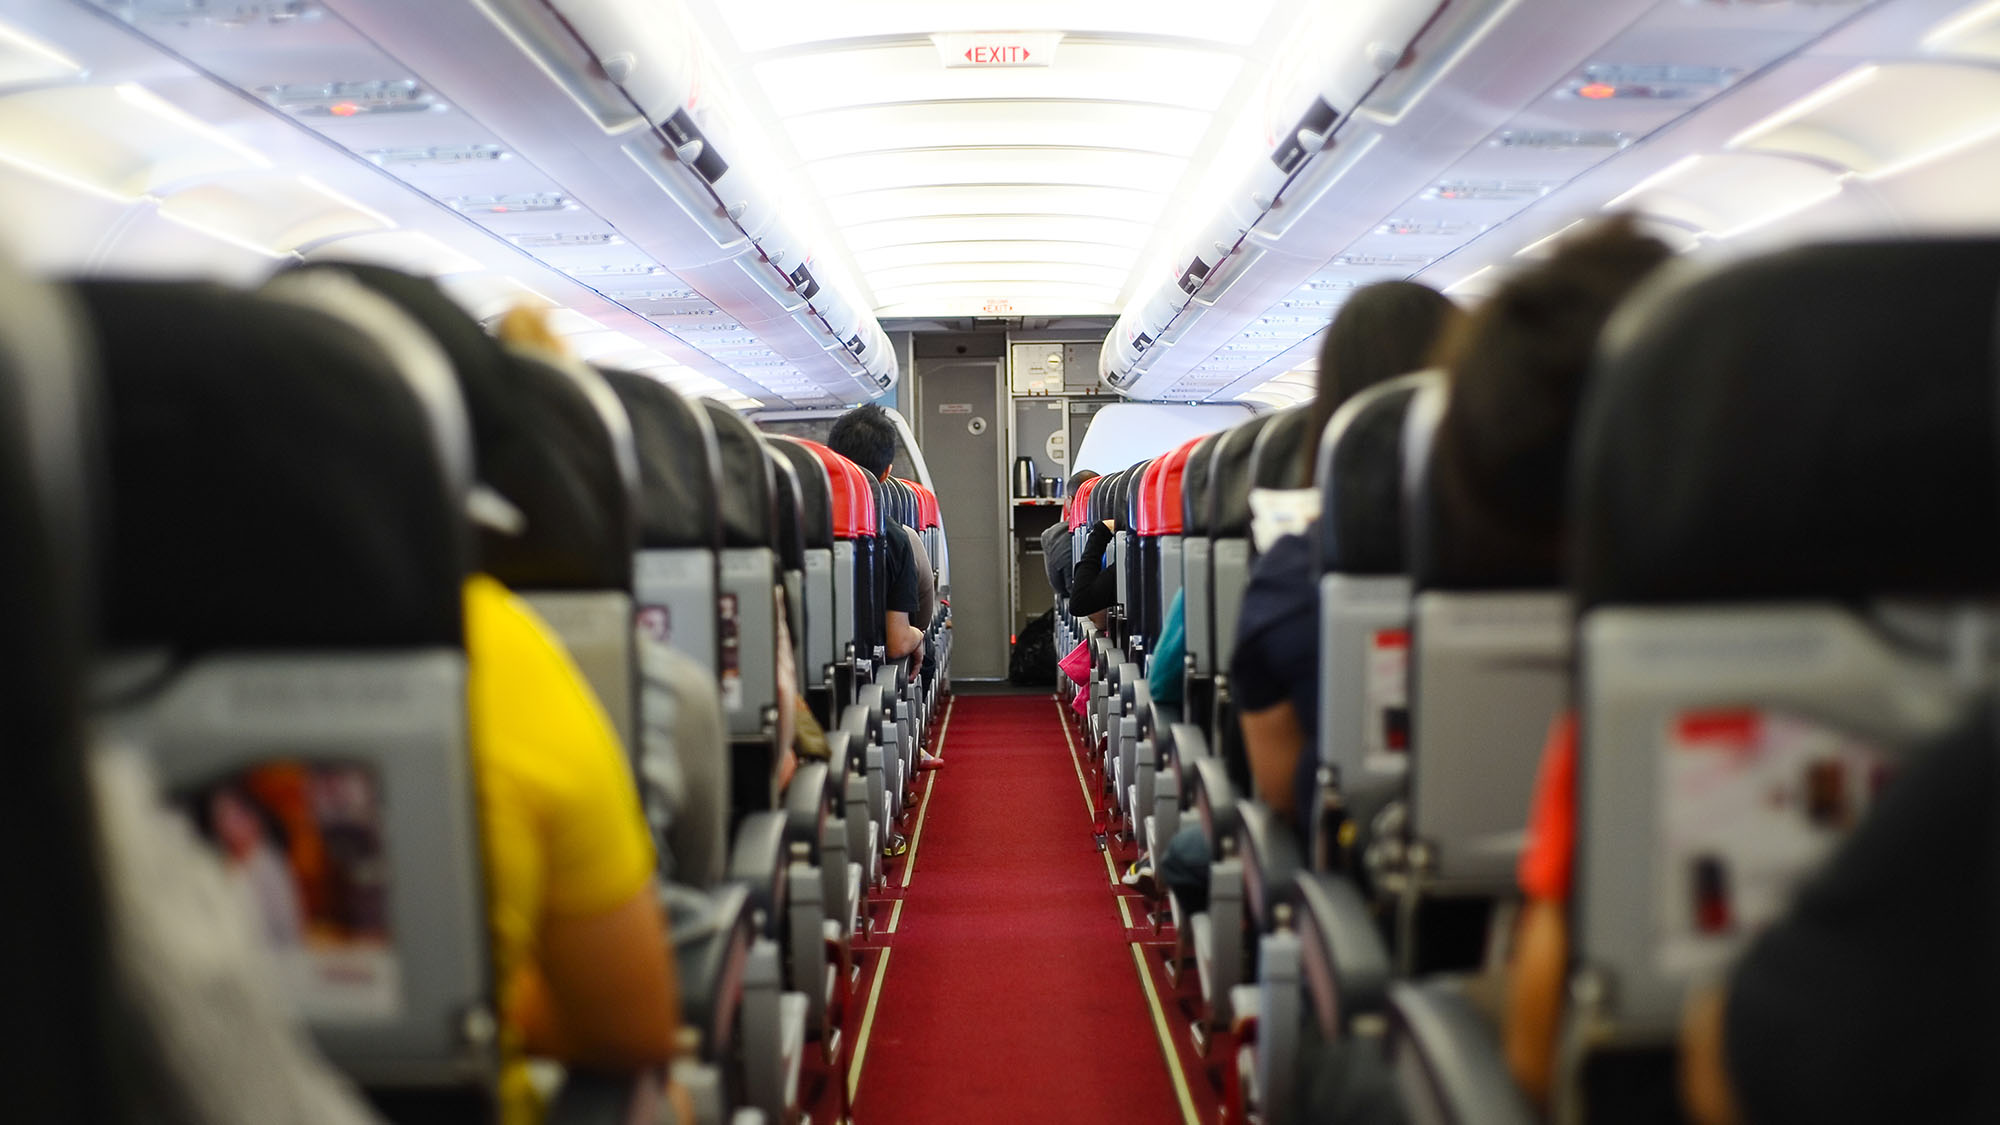 Are the size of seats on planes a health and safety danger?